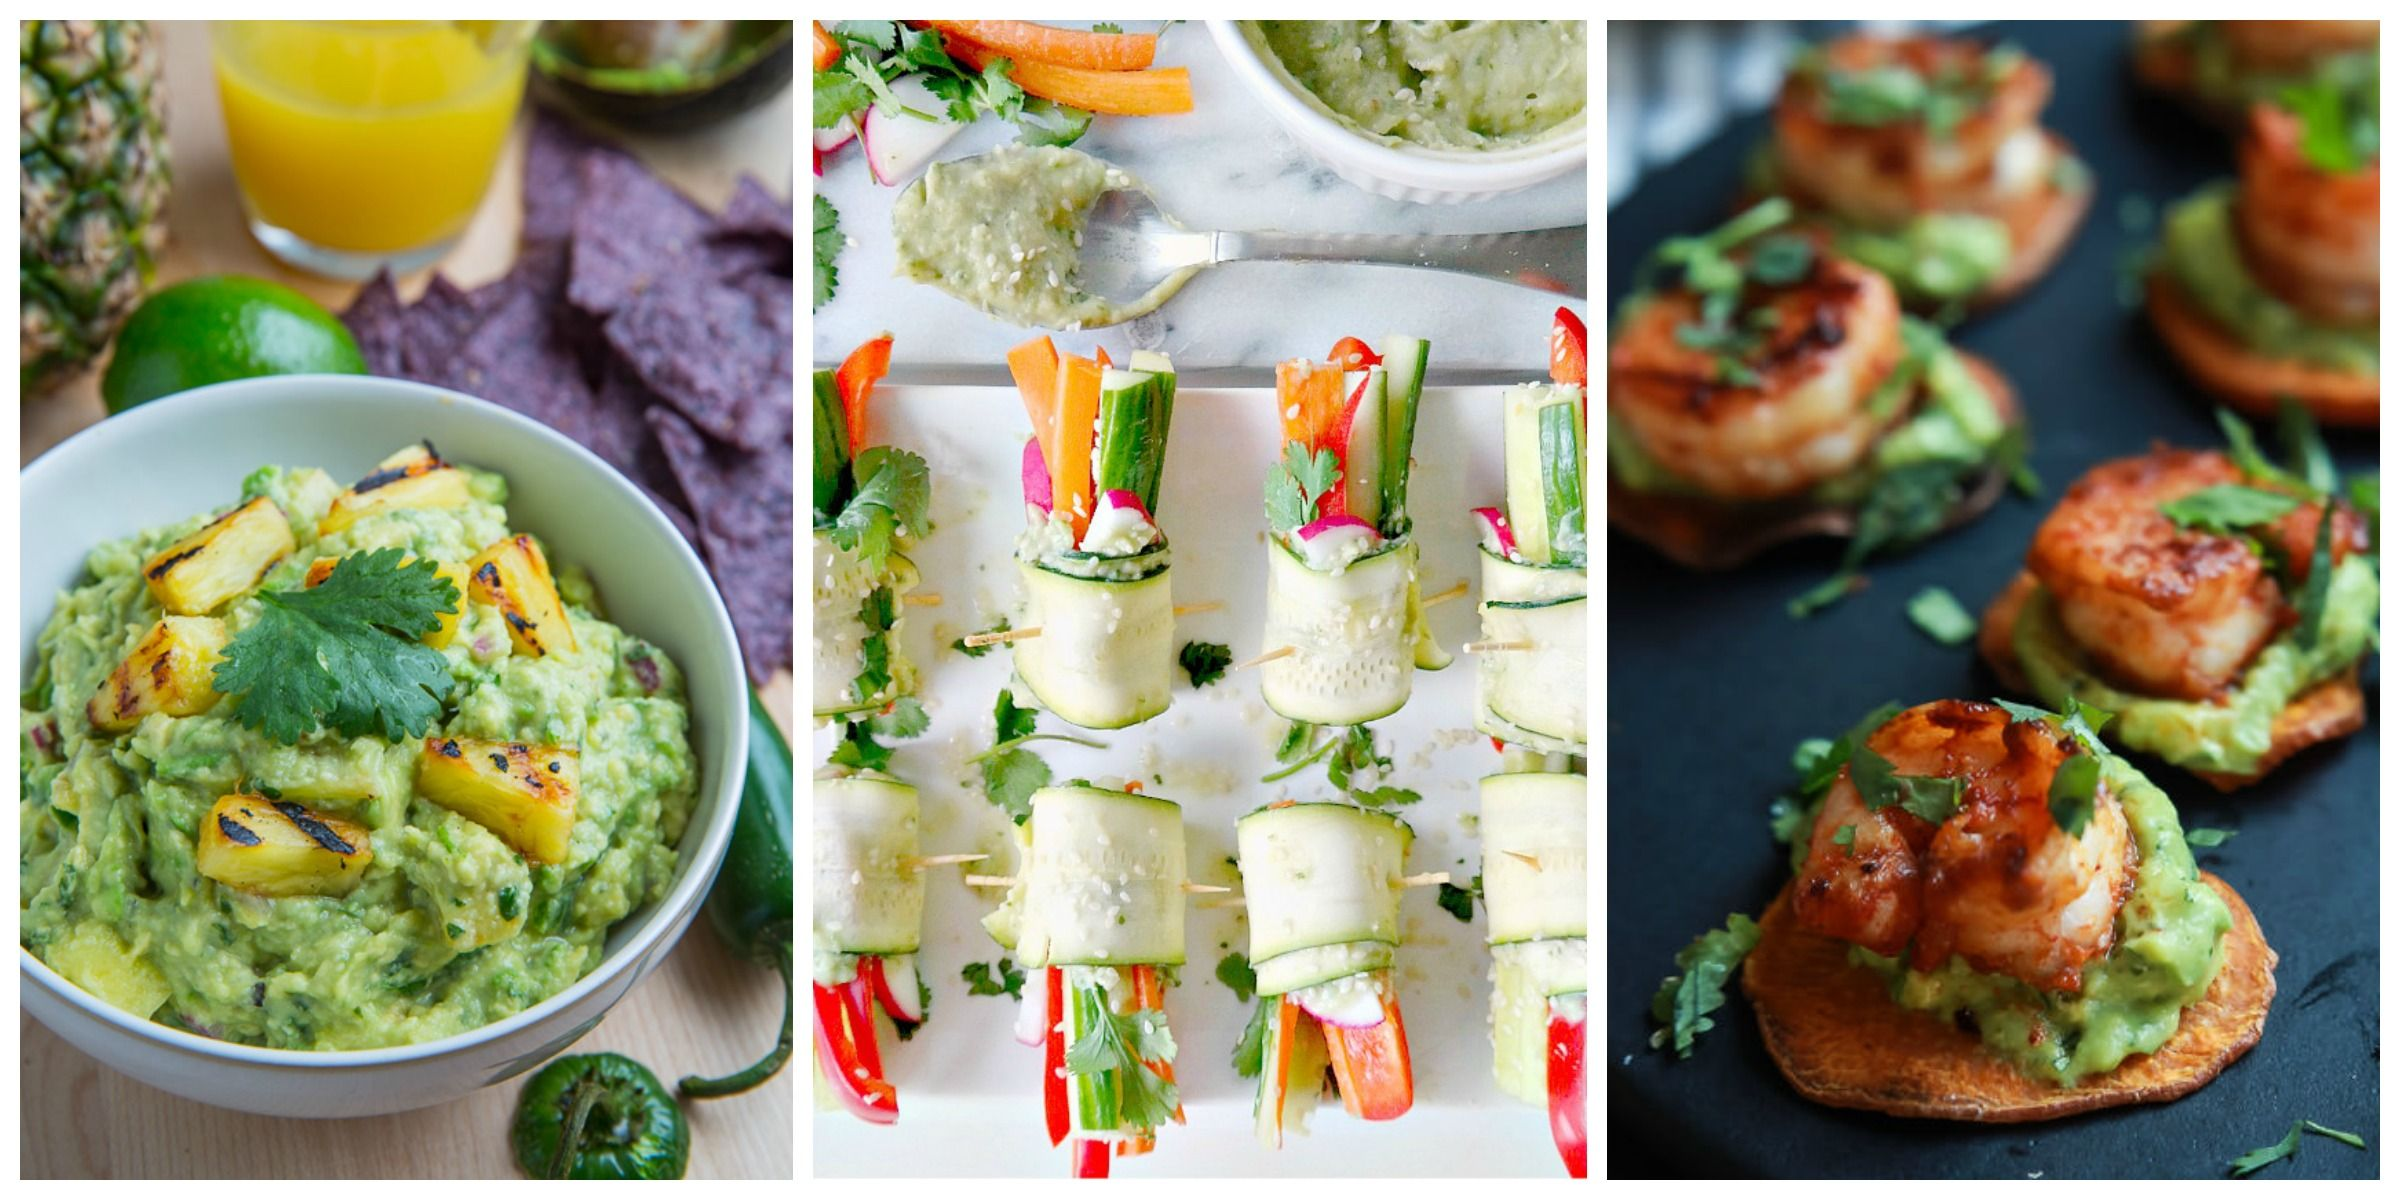 Healthy super bowl snacks healthy options for super bowl snacks forumfinder Image collections